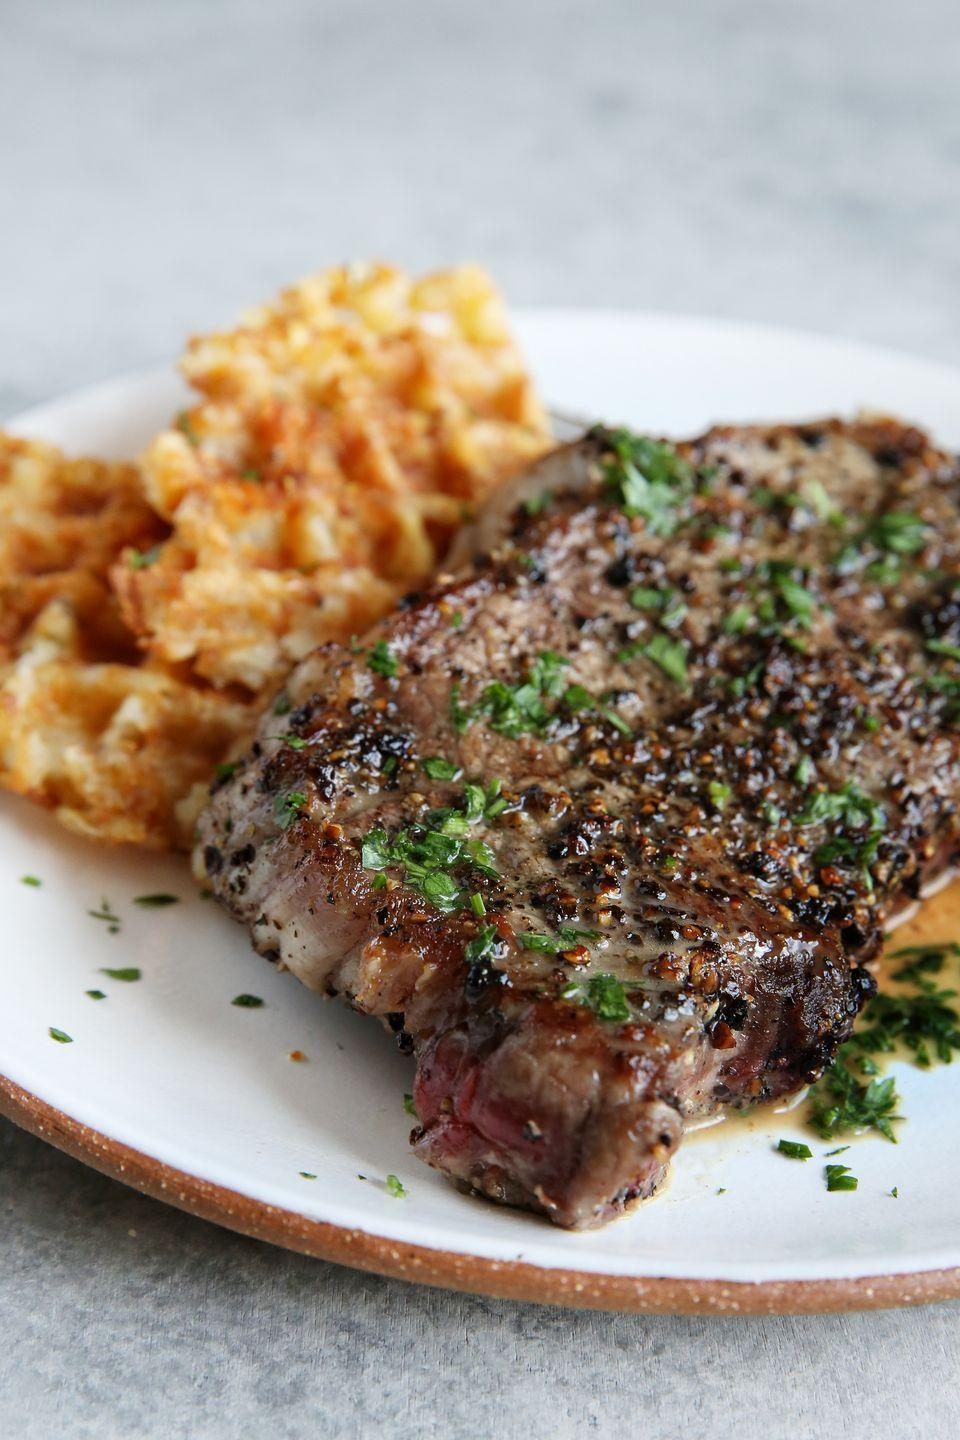 """<p>Sure, those tater tot waffles that we recommend alongside this steak aren't keto-friendly, but we can one up them. Try these <a href=""""https://www.delish.com/cooking/recipe-ideas/recipes/a53533/cauliflower-waffles-recipe/"""" rel=""""nofollow noopener"""" target=""""_blank"""" data-ylk=""""slk:cauliflower waffles"""" class=""""link rapid-noclick-resp"""">cauliflower waffles</a>! </p><p>Get the recipe from <a href=""""https://www.delish.com/cooking/recipe-ideas/recipes/a48914/steak-au-poivre-with-tater-tot-waffles-recipe/"""" rel=""""nofollow noopener"""" target=""""_blank"""" data-ylk=""""slk:Delish"""" class=""""link rapid-noclick-resp"""">Delish</a>. </p>"""